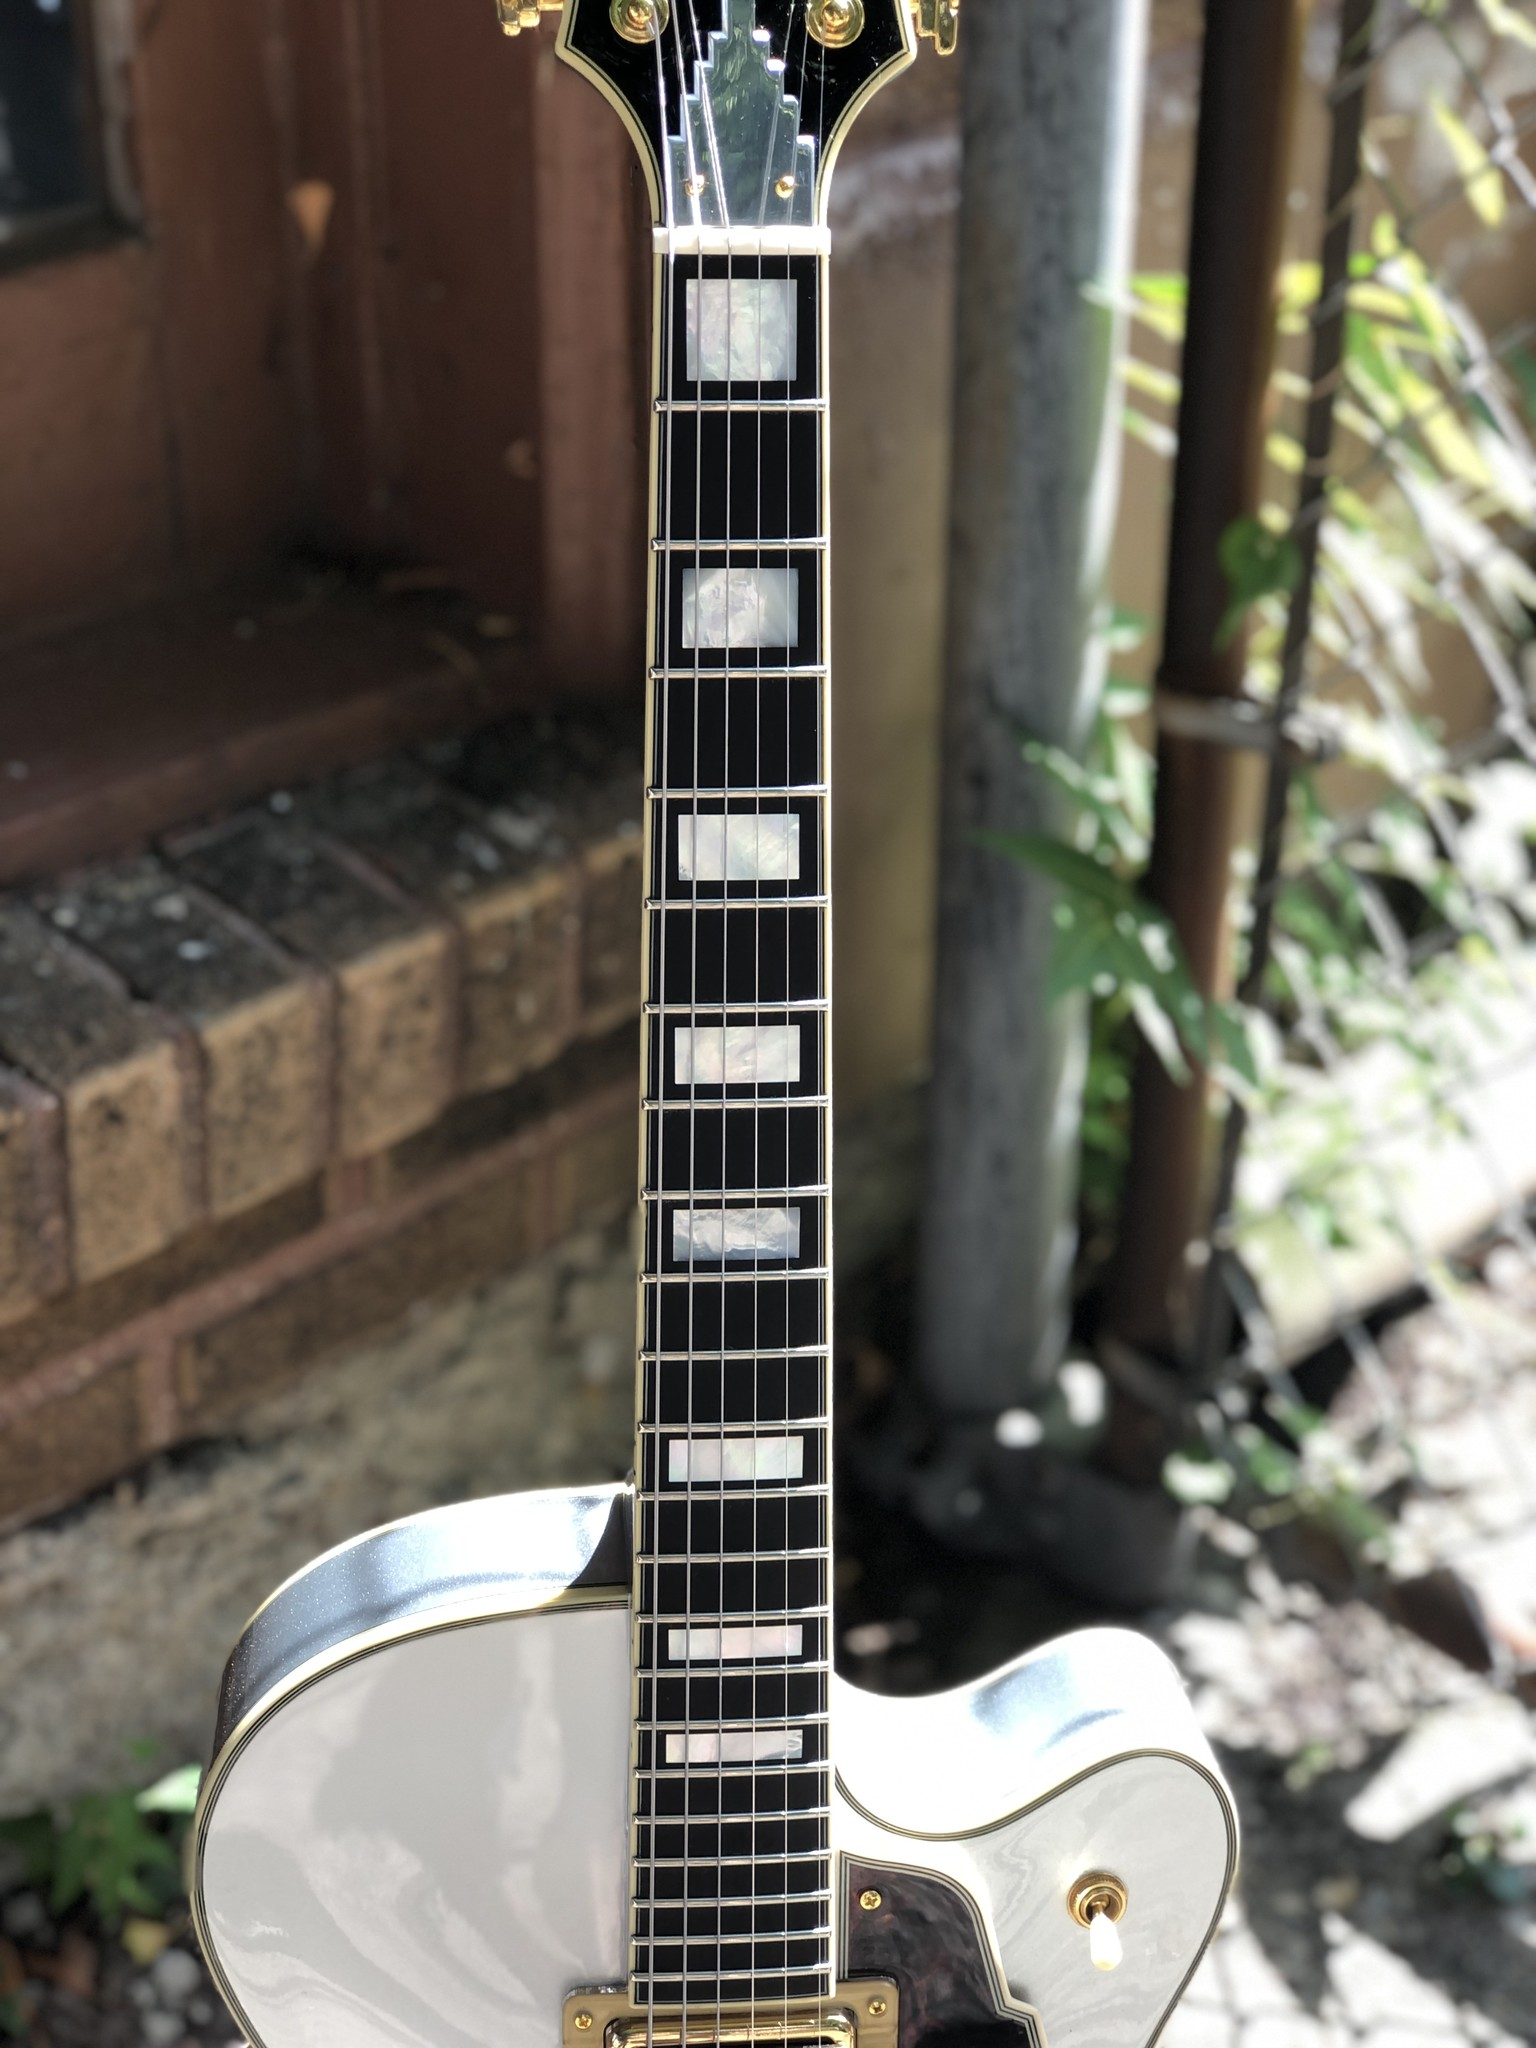 D'Angelico Deluxe DLX-175 Hollowbody - Silver-6